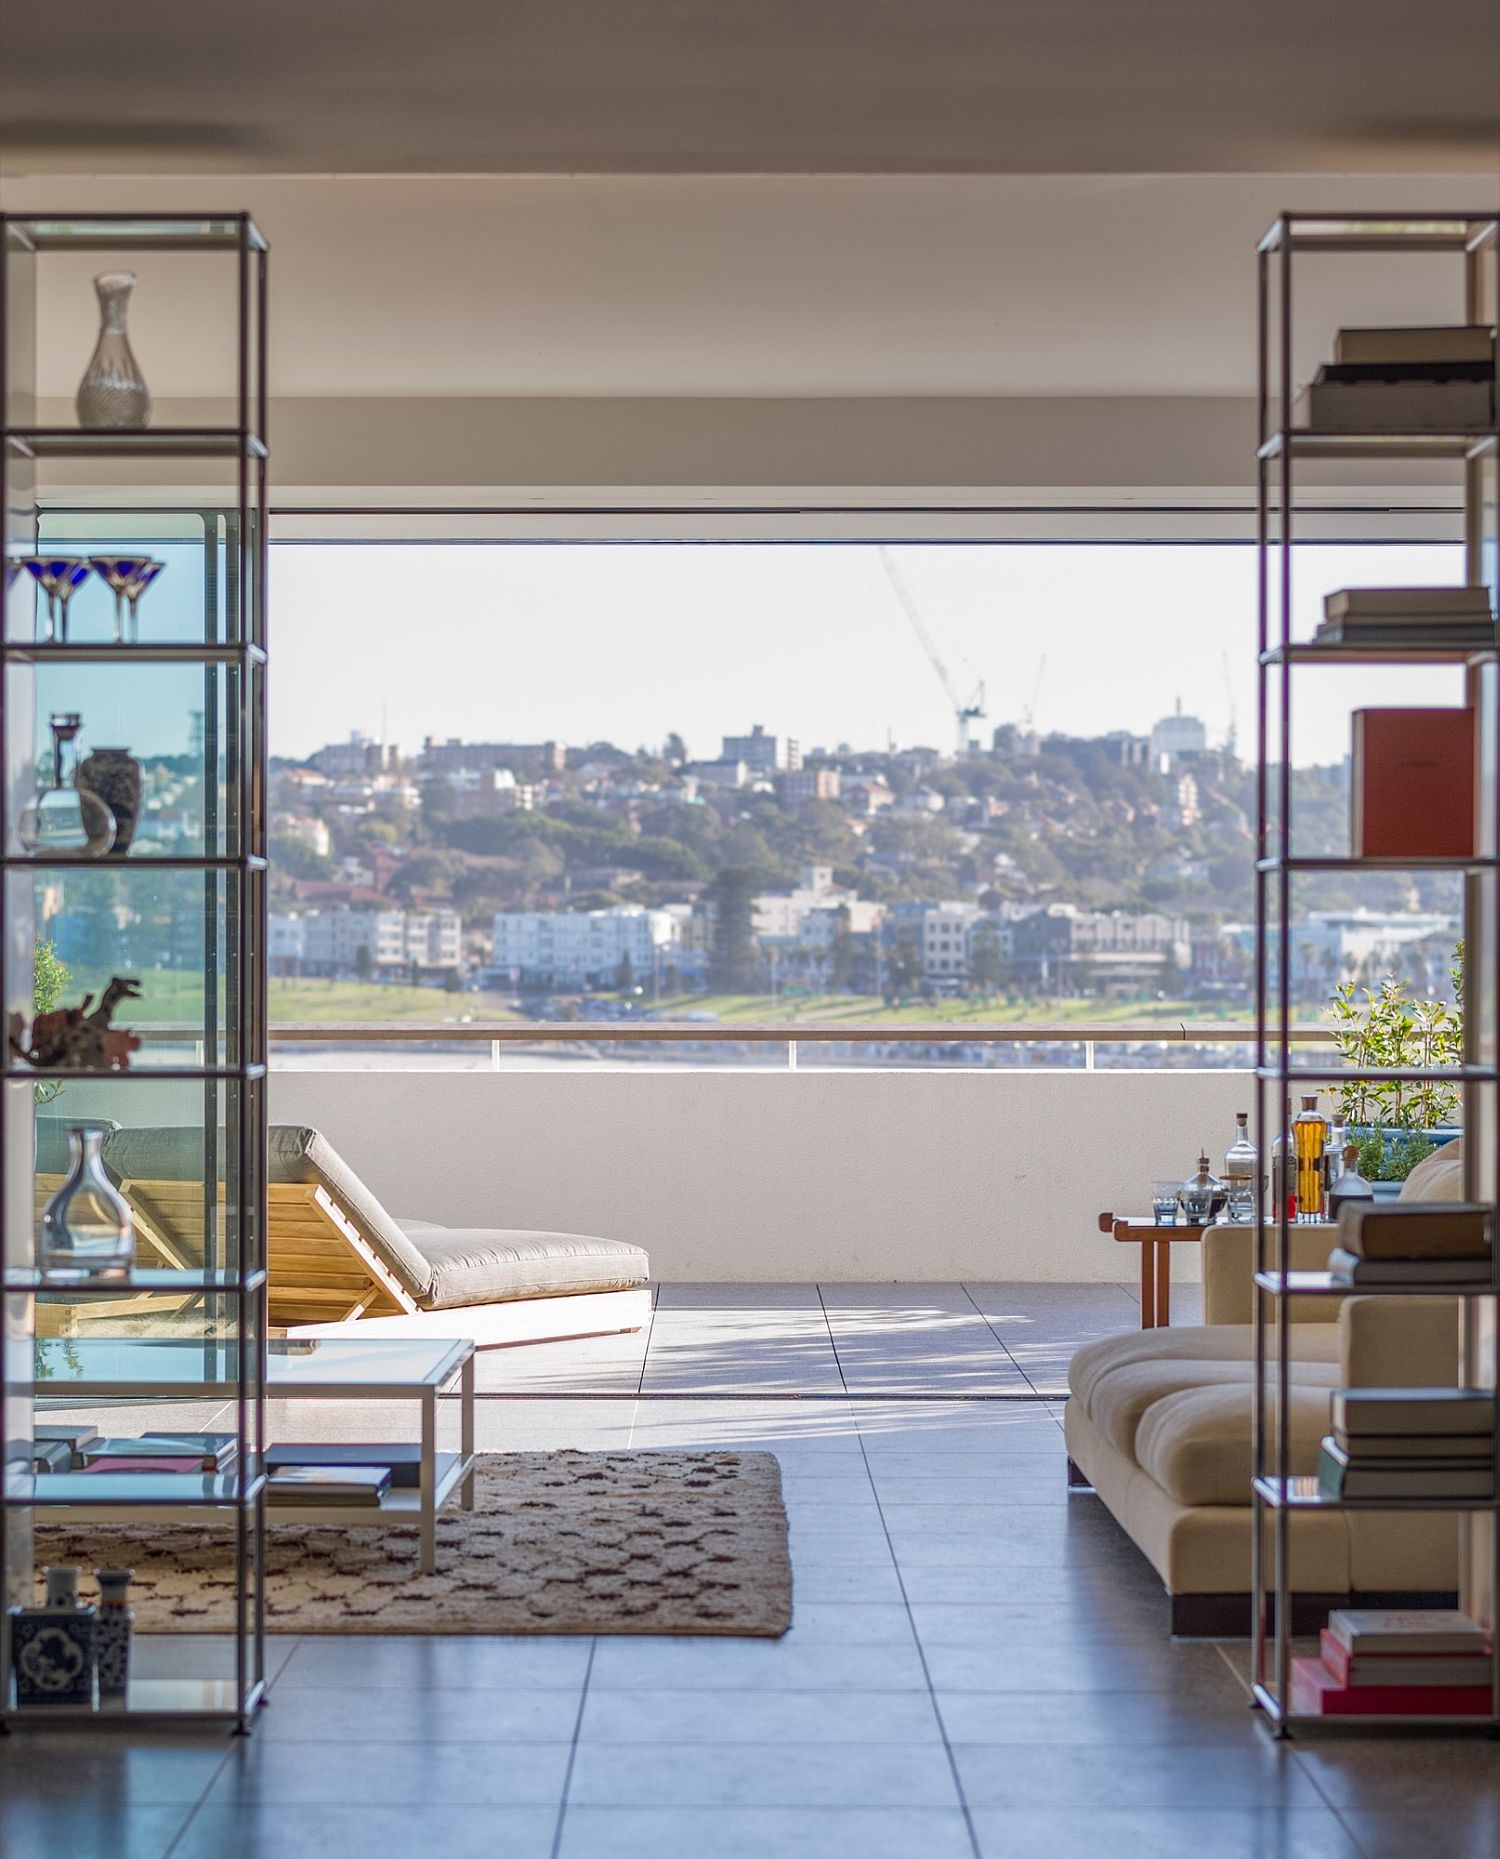 View from the top level of the Bondi Beach Home